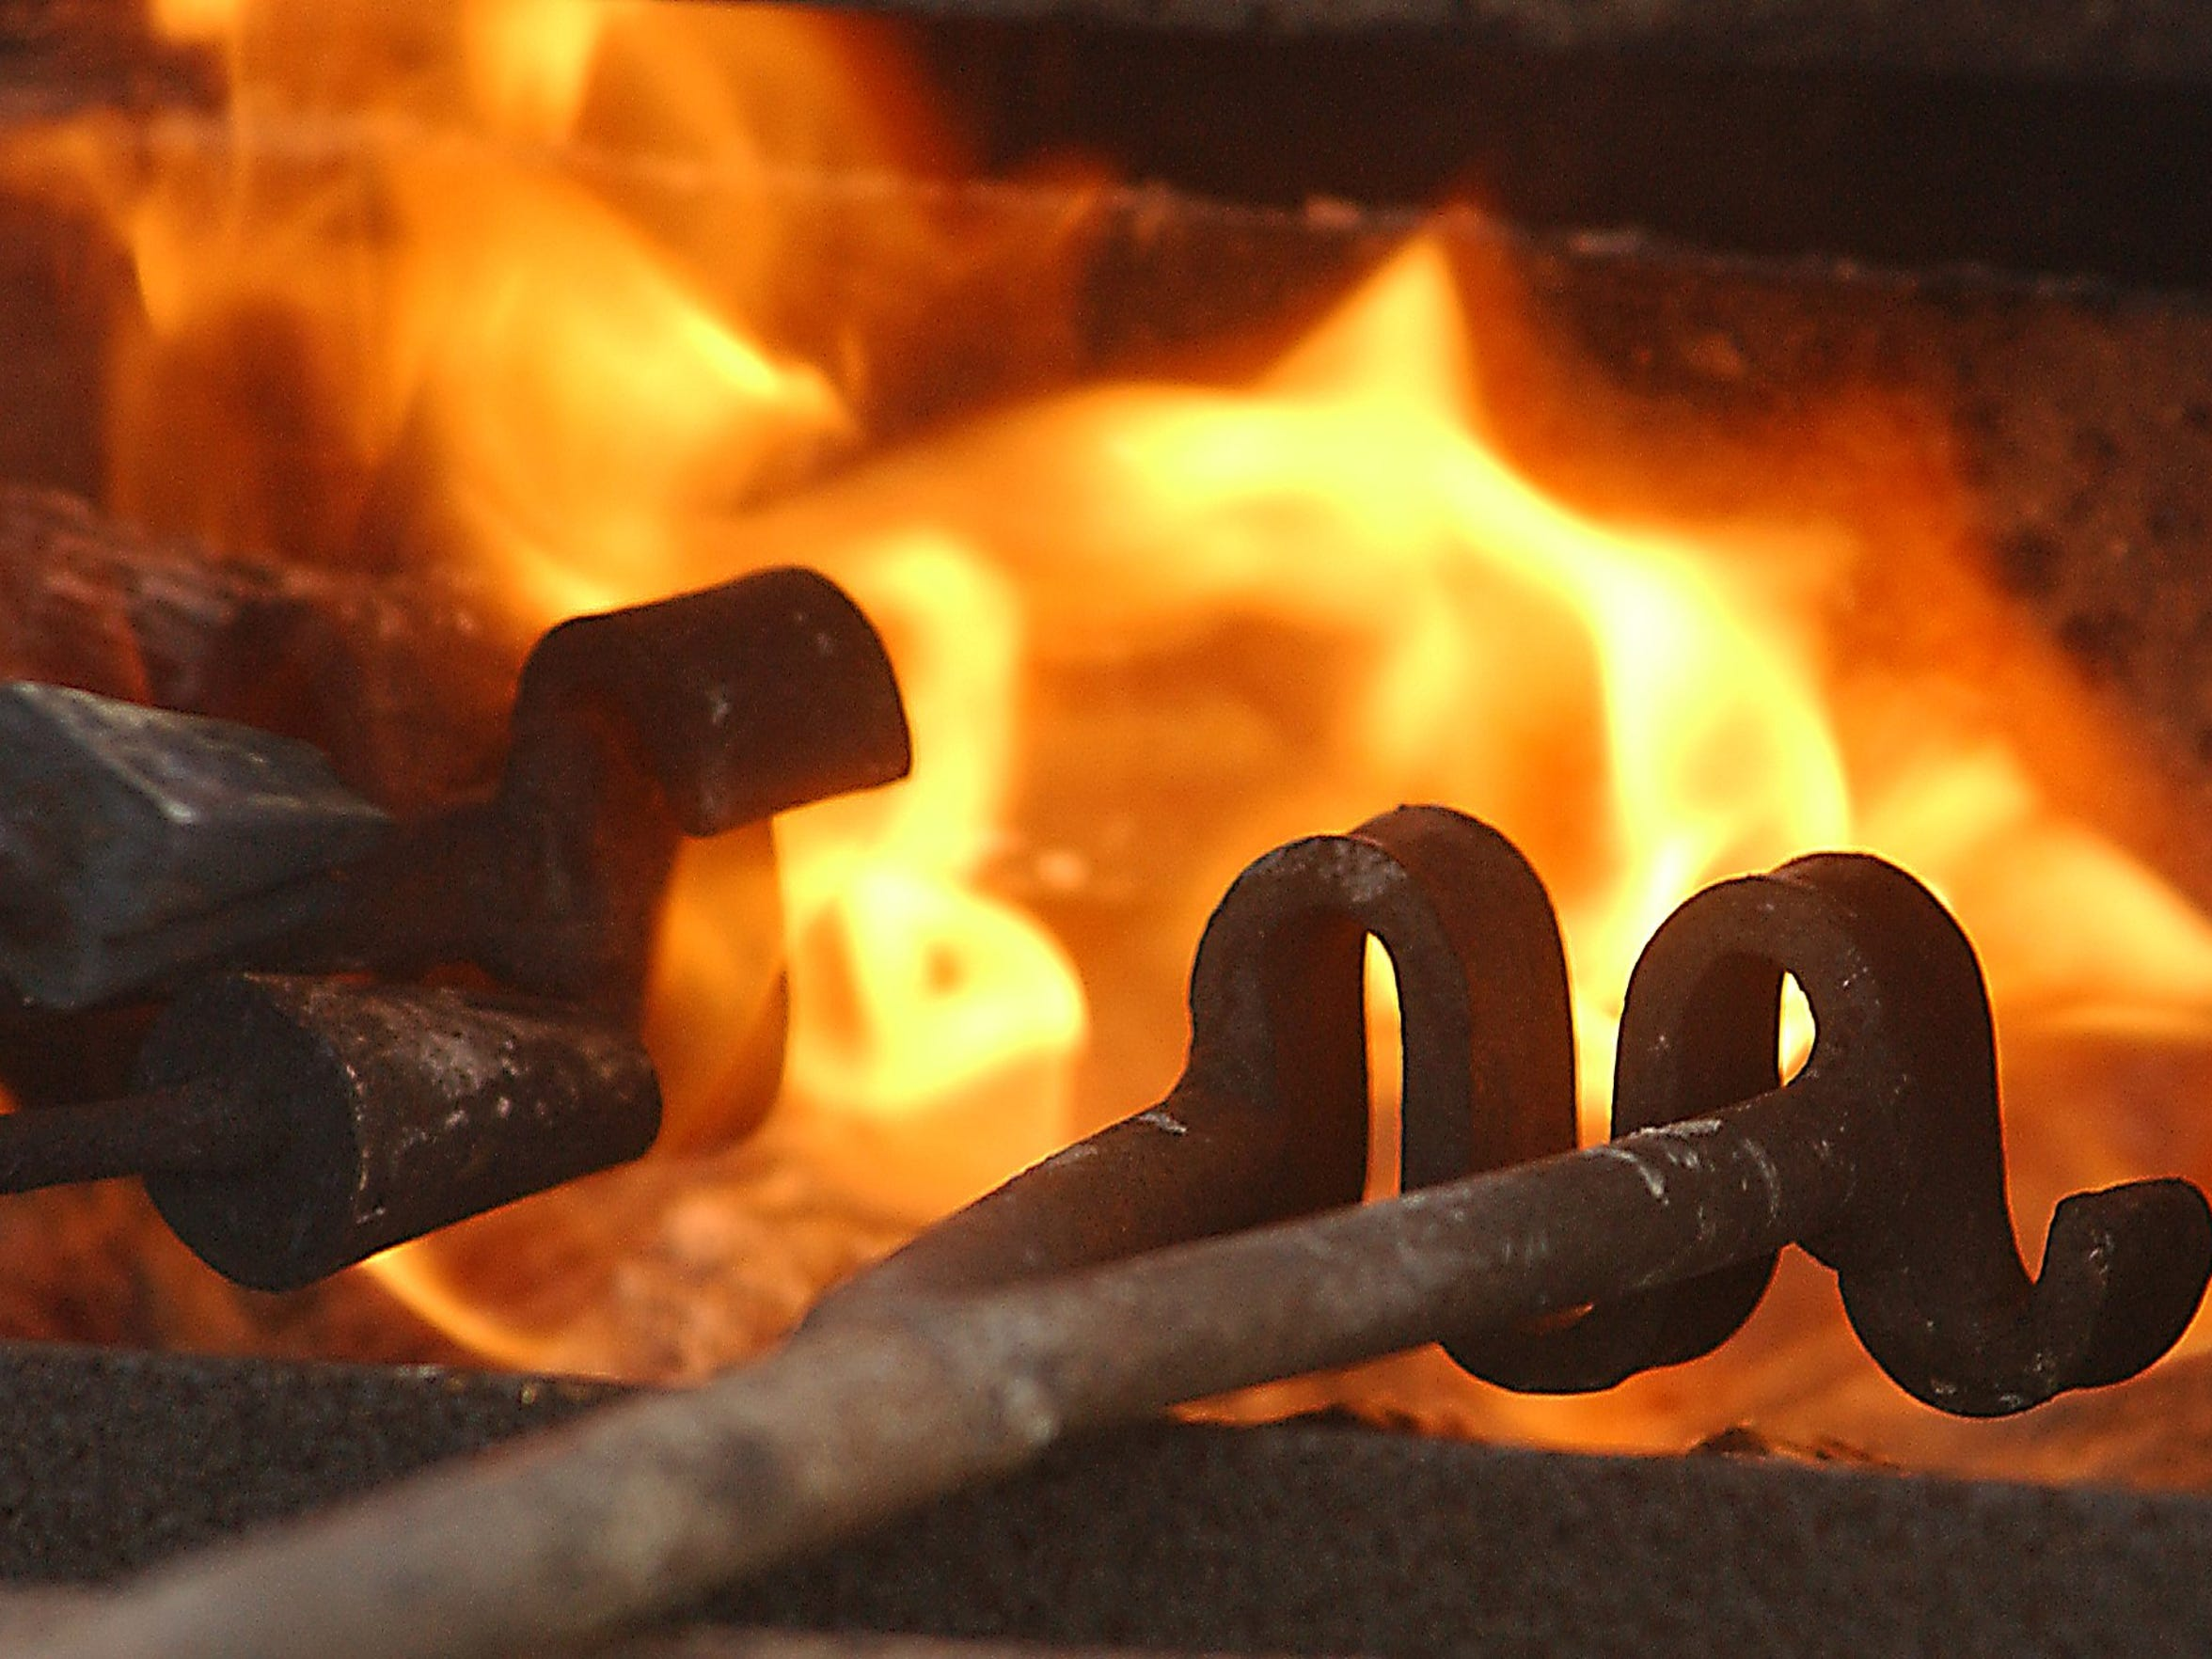 Branding irons are heated in flames at King Ranch during the Ranch Hand Breakfast.